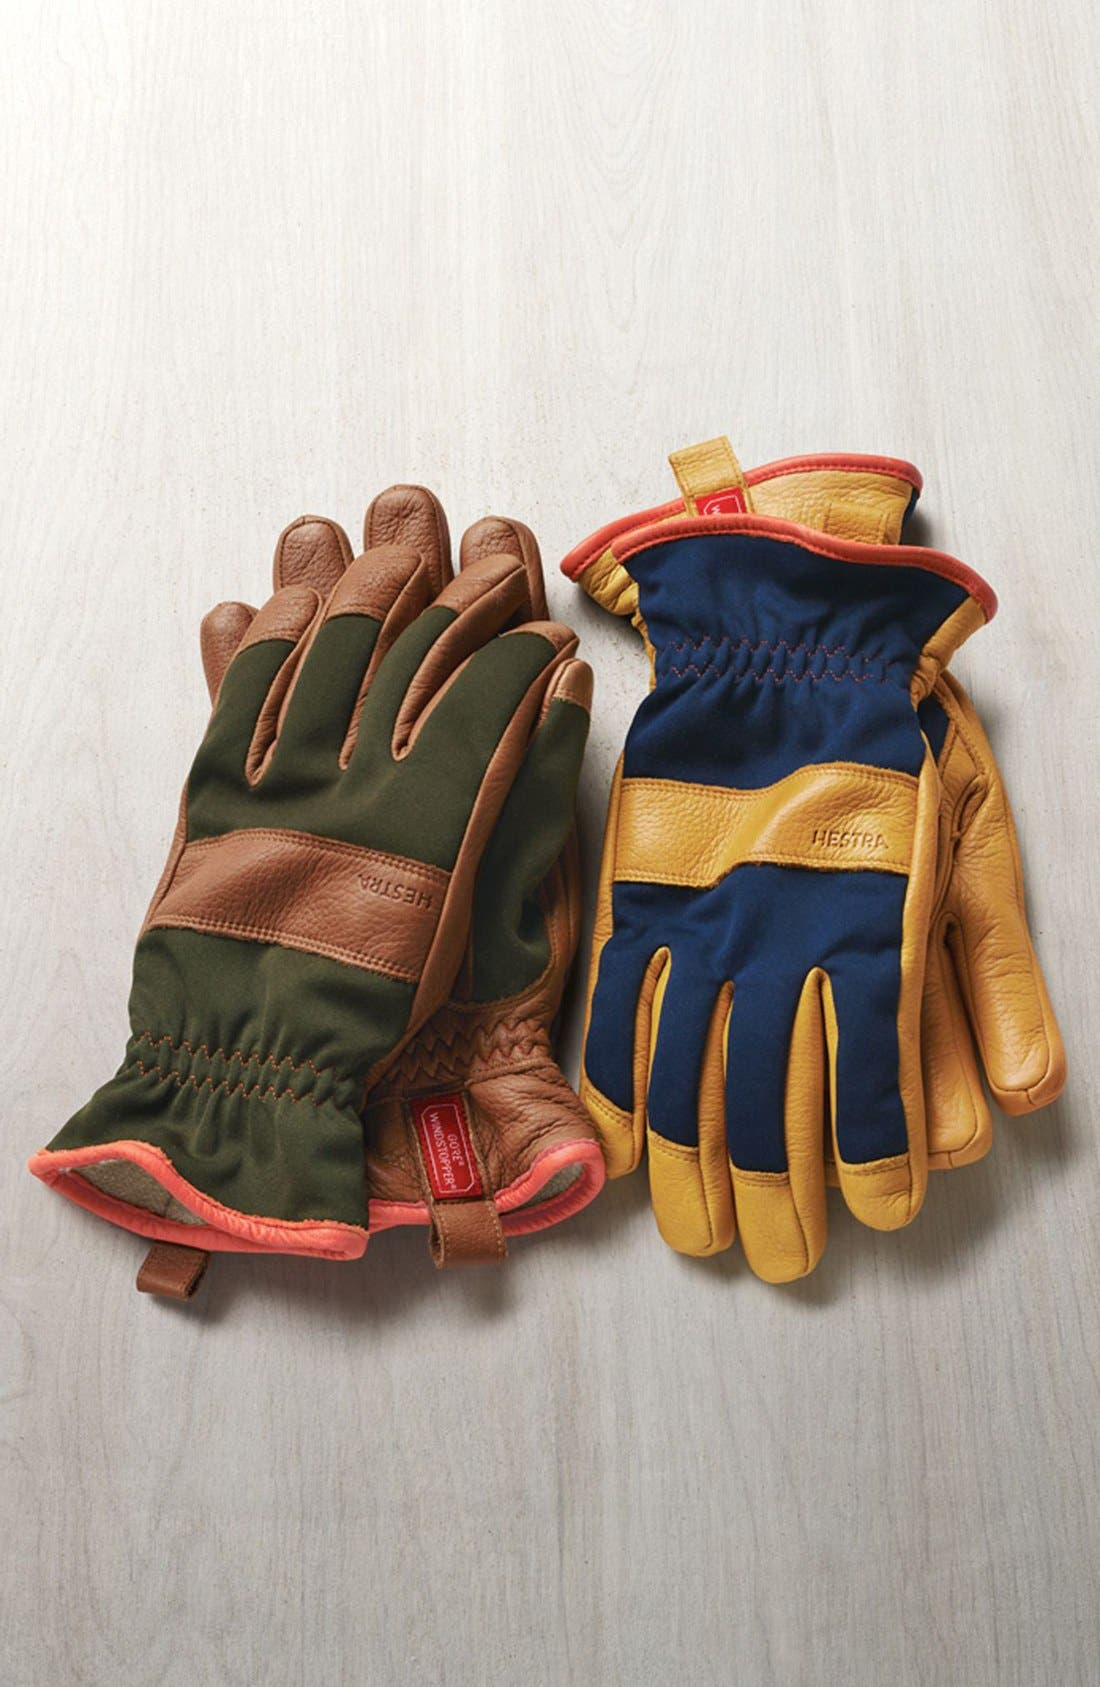 'Tor' Leather Gloves,                             Alternate thumbnail 3, color,                             DARK FOREST/ NATURAL YELLOW